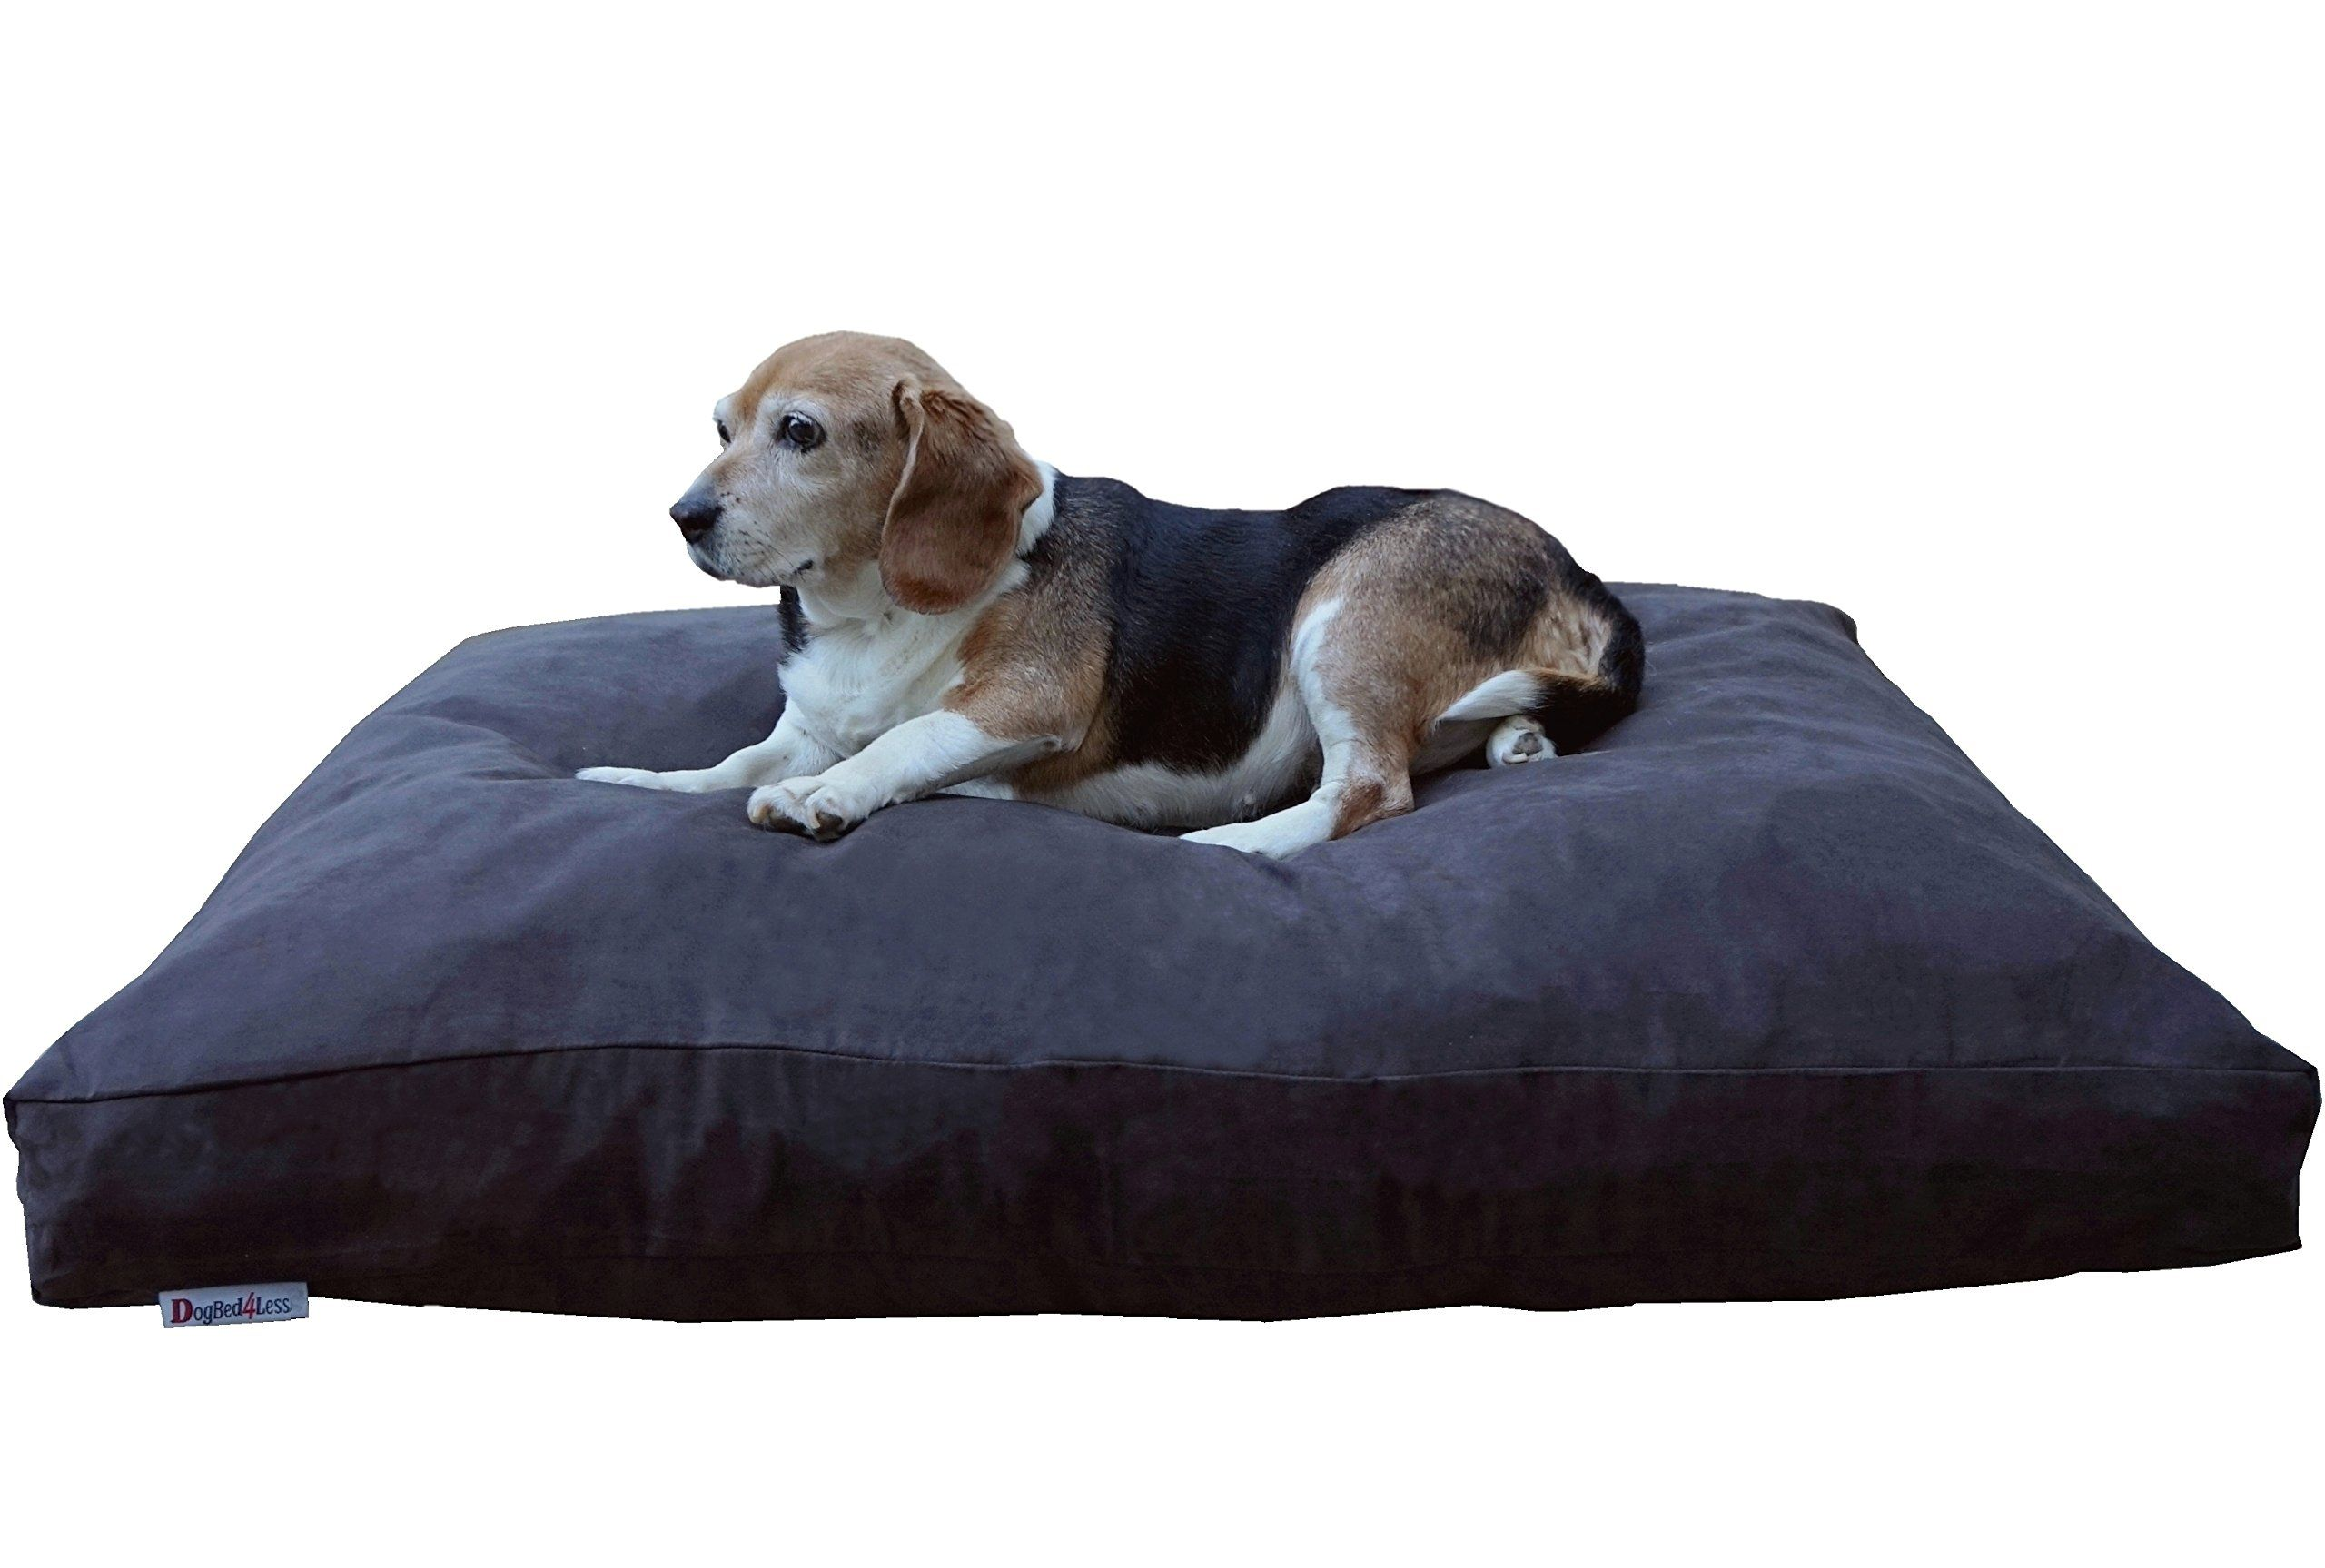 and pin bed dog with memory bottom luxury large beds plus antimicrobial pillow foam thick x orthopedic waterproof antislip liner